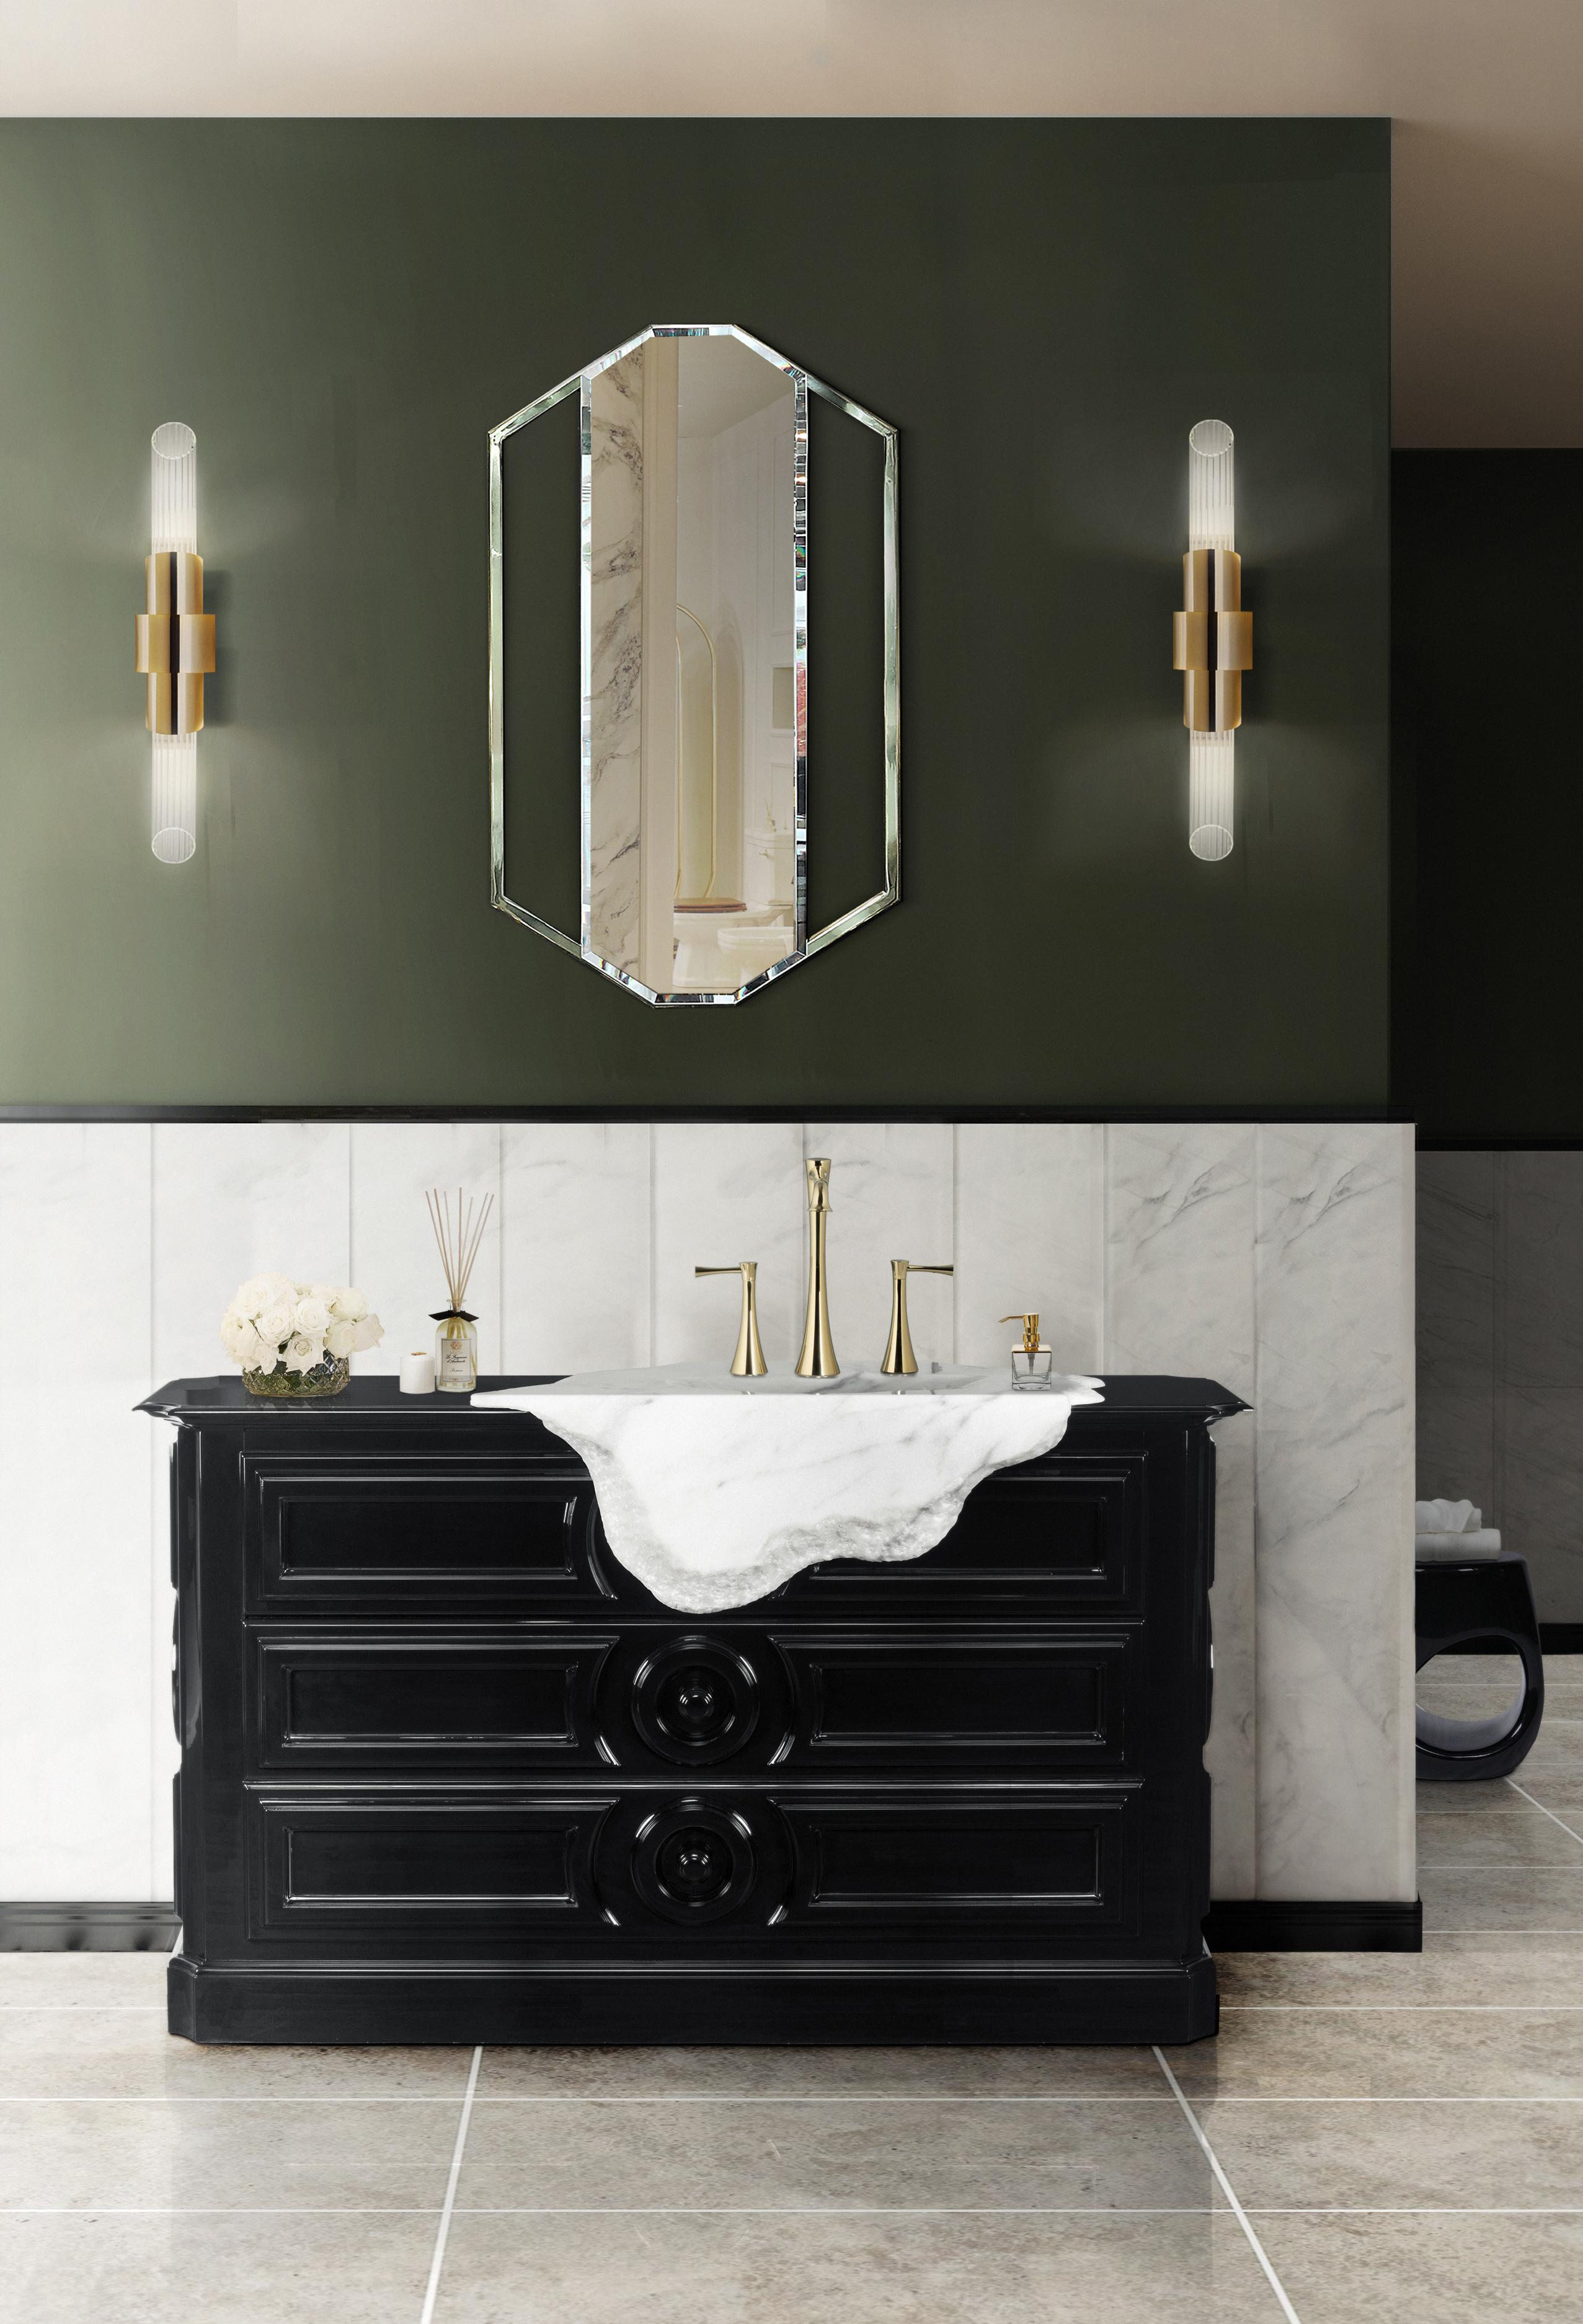 Petra Collection: Unveiling The Petra Freestand 45 petra washbasin 1 HR